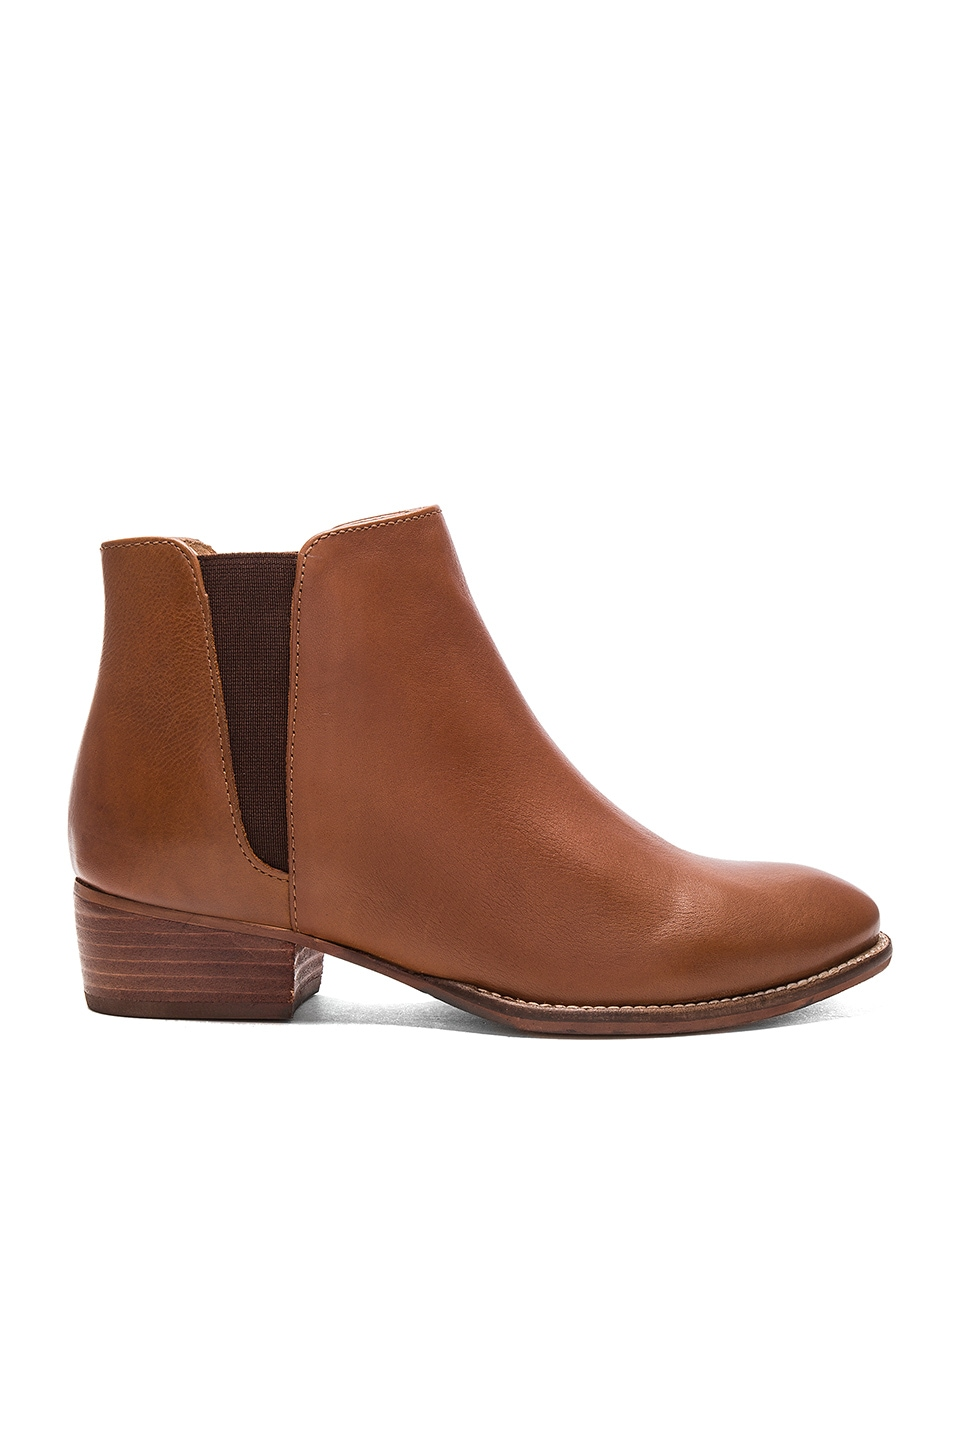 Seychelles Wake Booties in Whiskey Leather